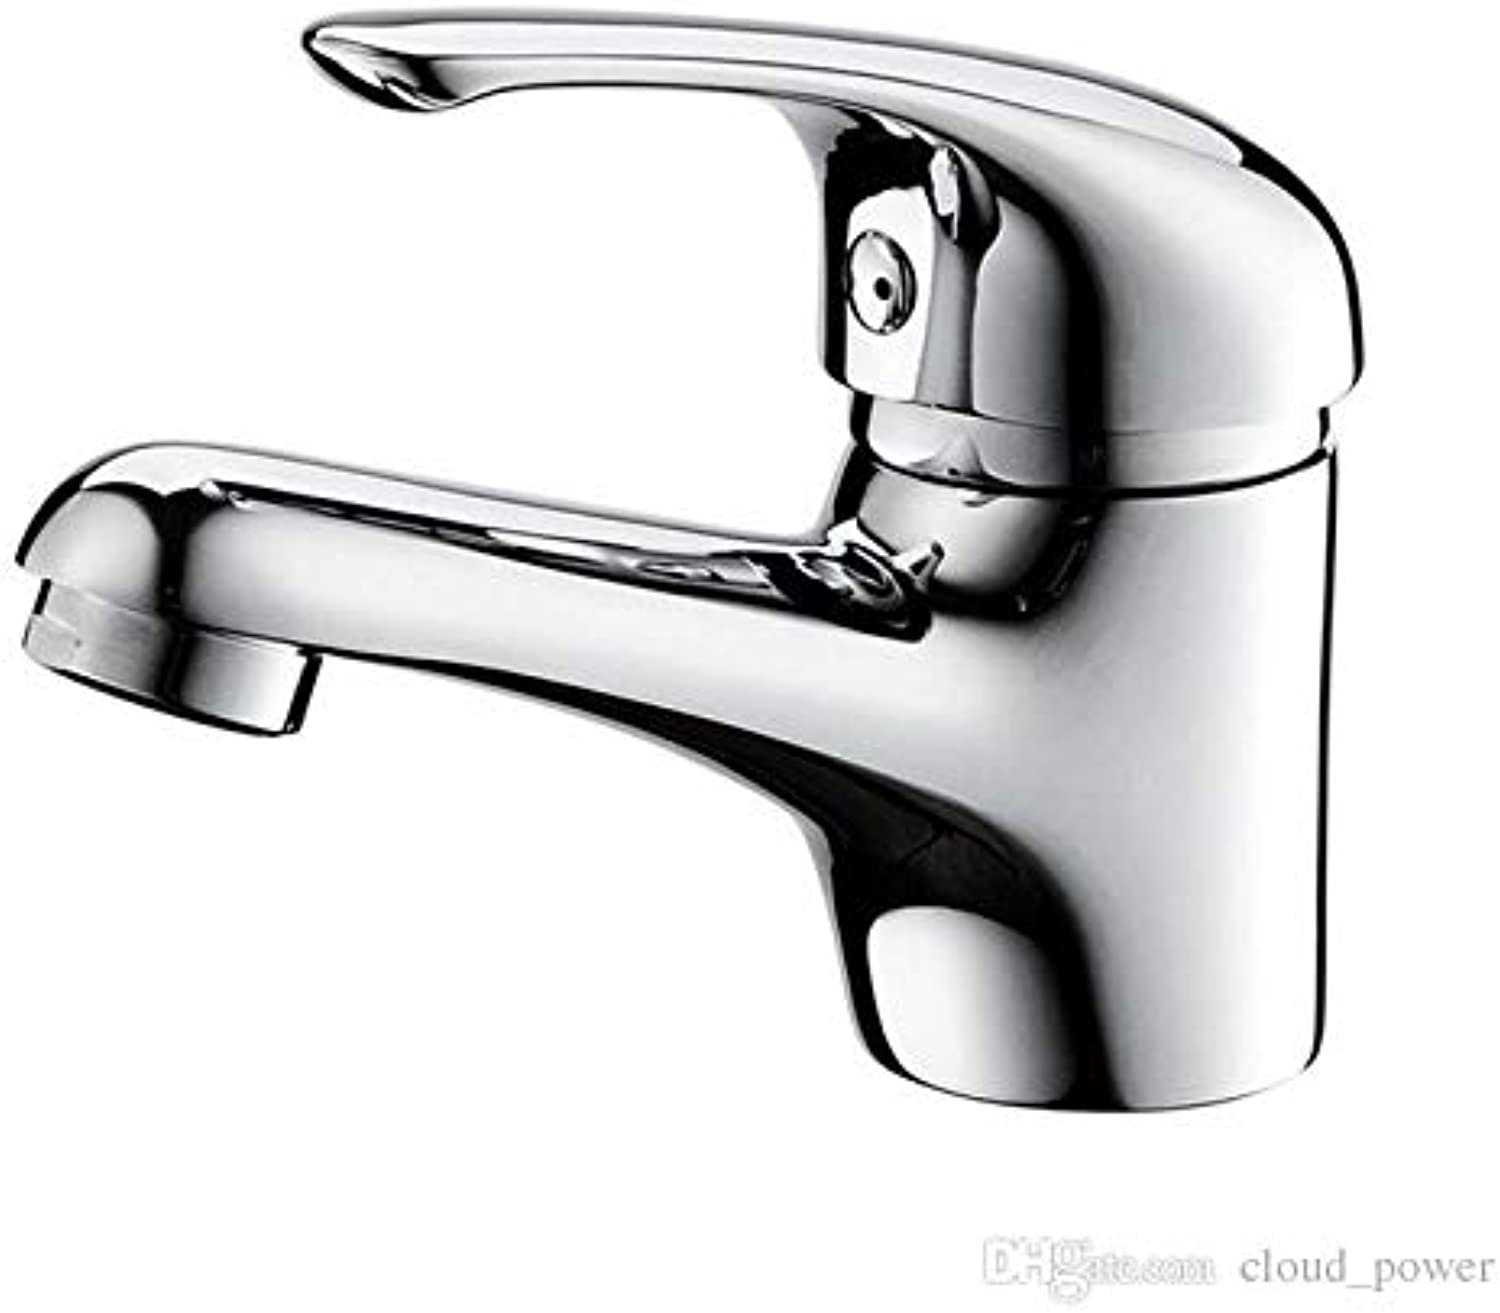 Decorry Bathroom Basin Faucet Brass Contemporary Ceramic Valve-Core Hot and Cold Water Mixer Tap with Chromium, Single Handle